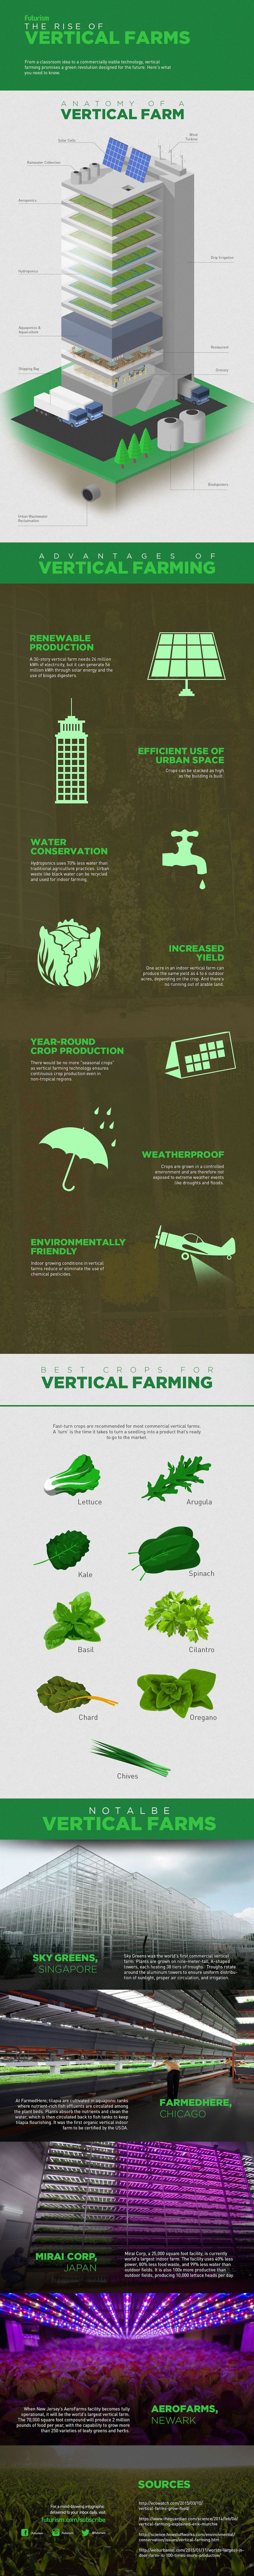 By 2050, nearly 2/3 of the world's population will be living in cities. Here's how we'll feed them.   http://futurism.com/images/the-rise-of-vertical-farms-infographic/?utm_campaign=coschedule&utm_source=pinterest&utm_medium=Futurism&utm_content=The%20Rise%20Of%20Vertical%20Farms%20%5BInfographic%5D